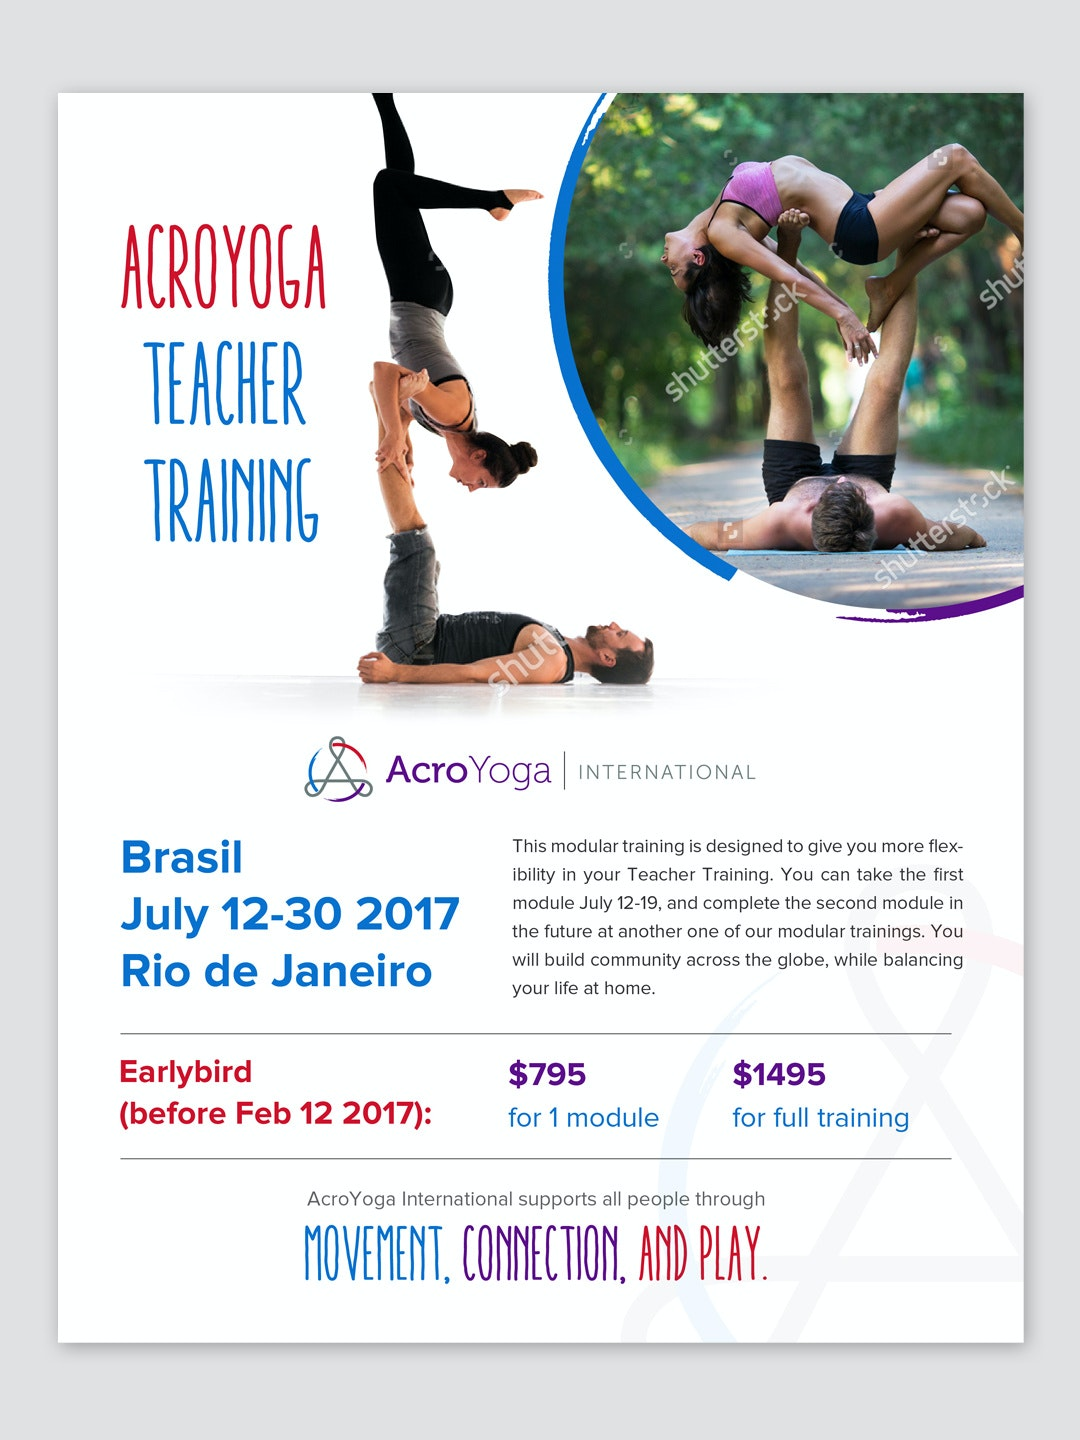 Flyer for acroyoga teacher training